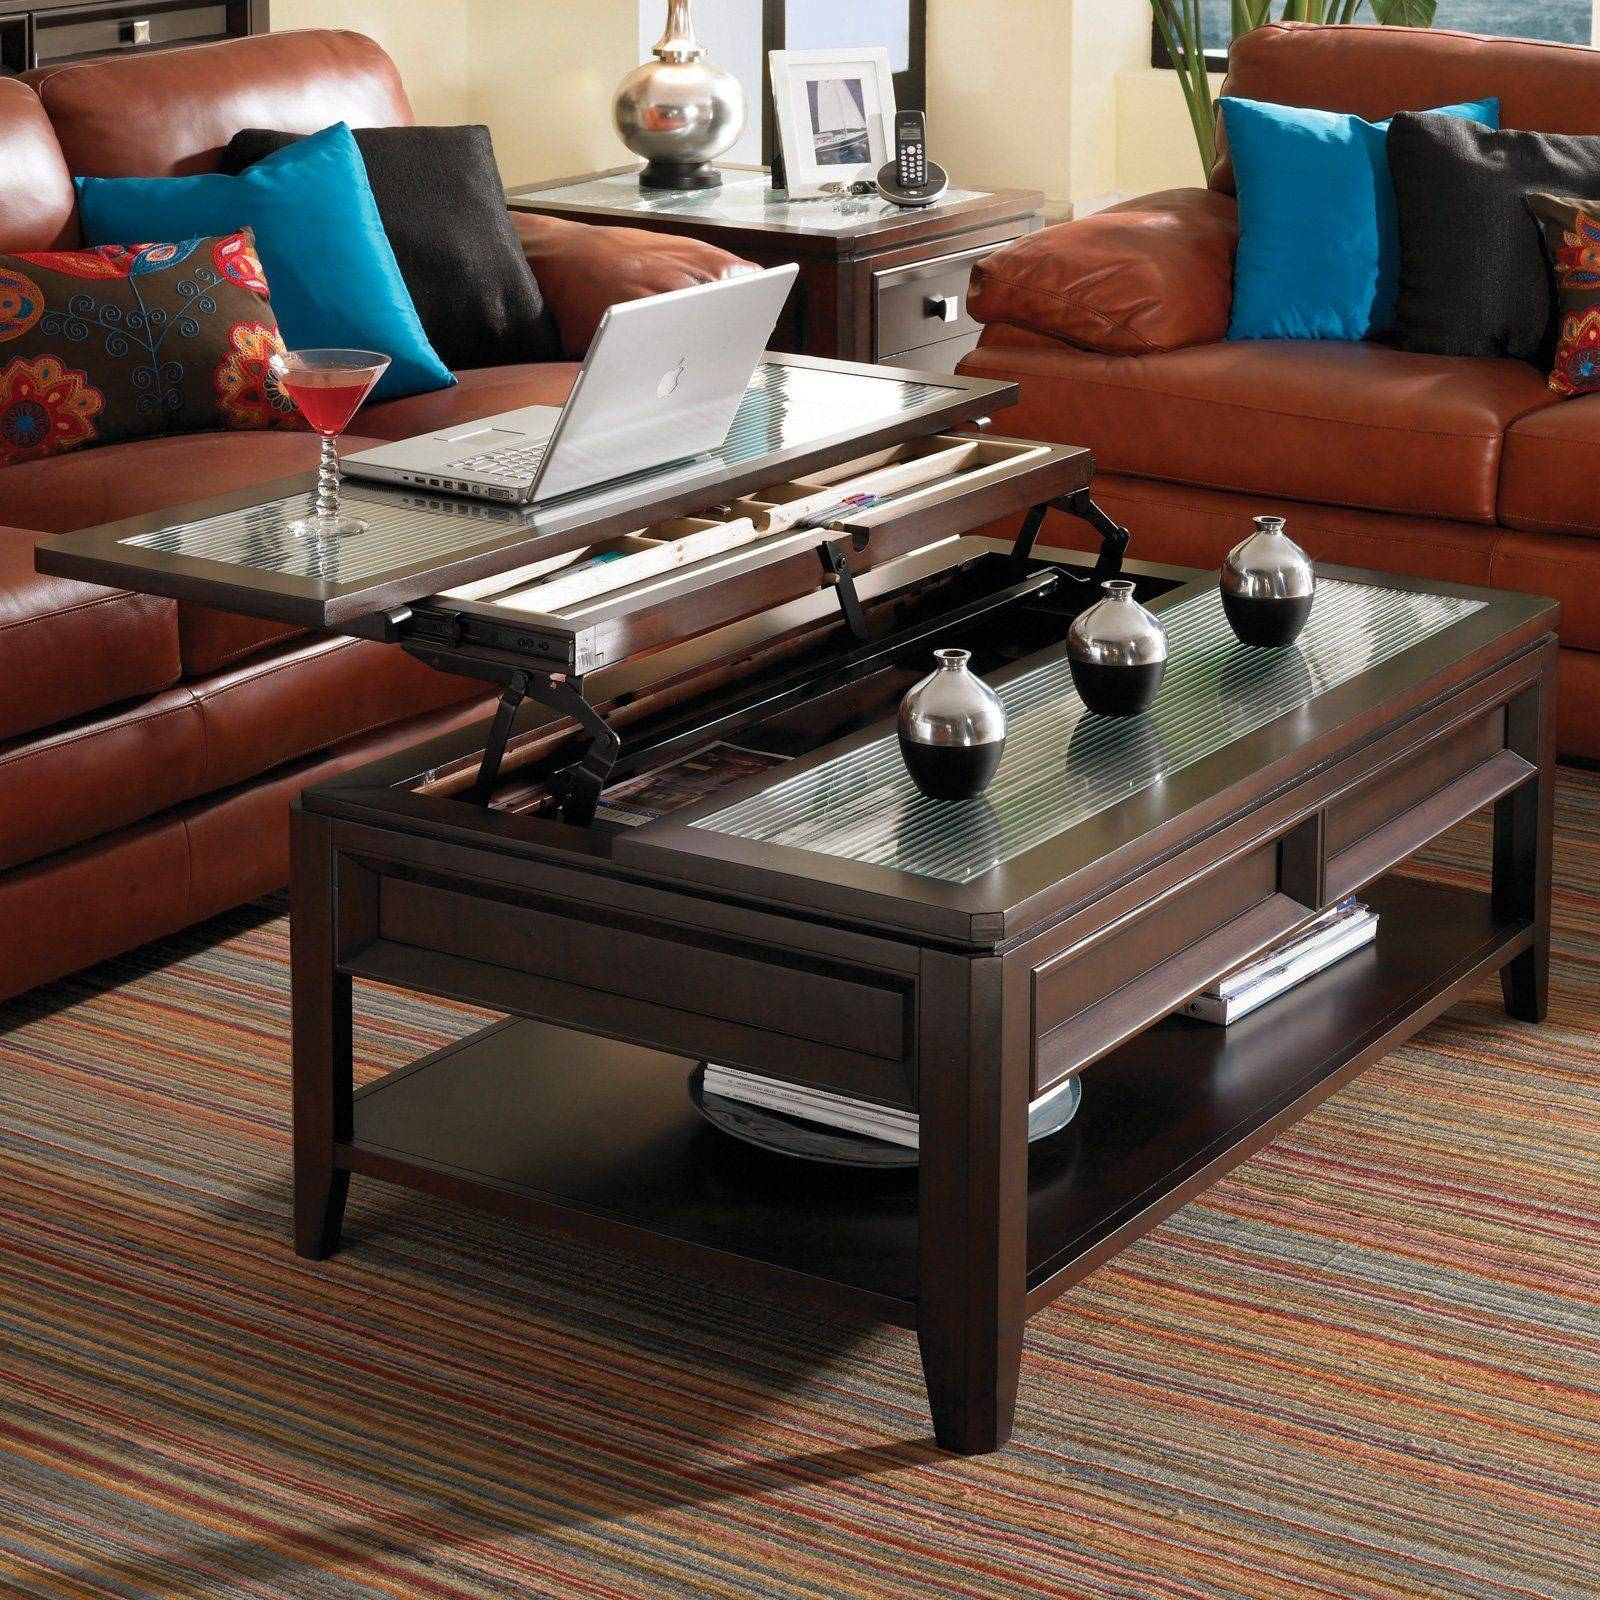 Lift Top Coffee Table Hardware - Karimbilal with regard to Lift Up Coffee Tables (Image 18 of 30)